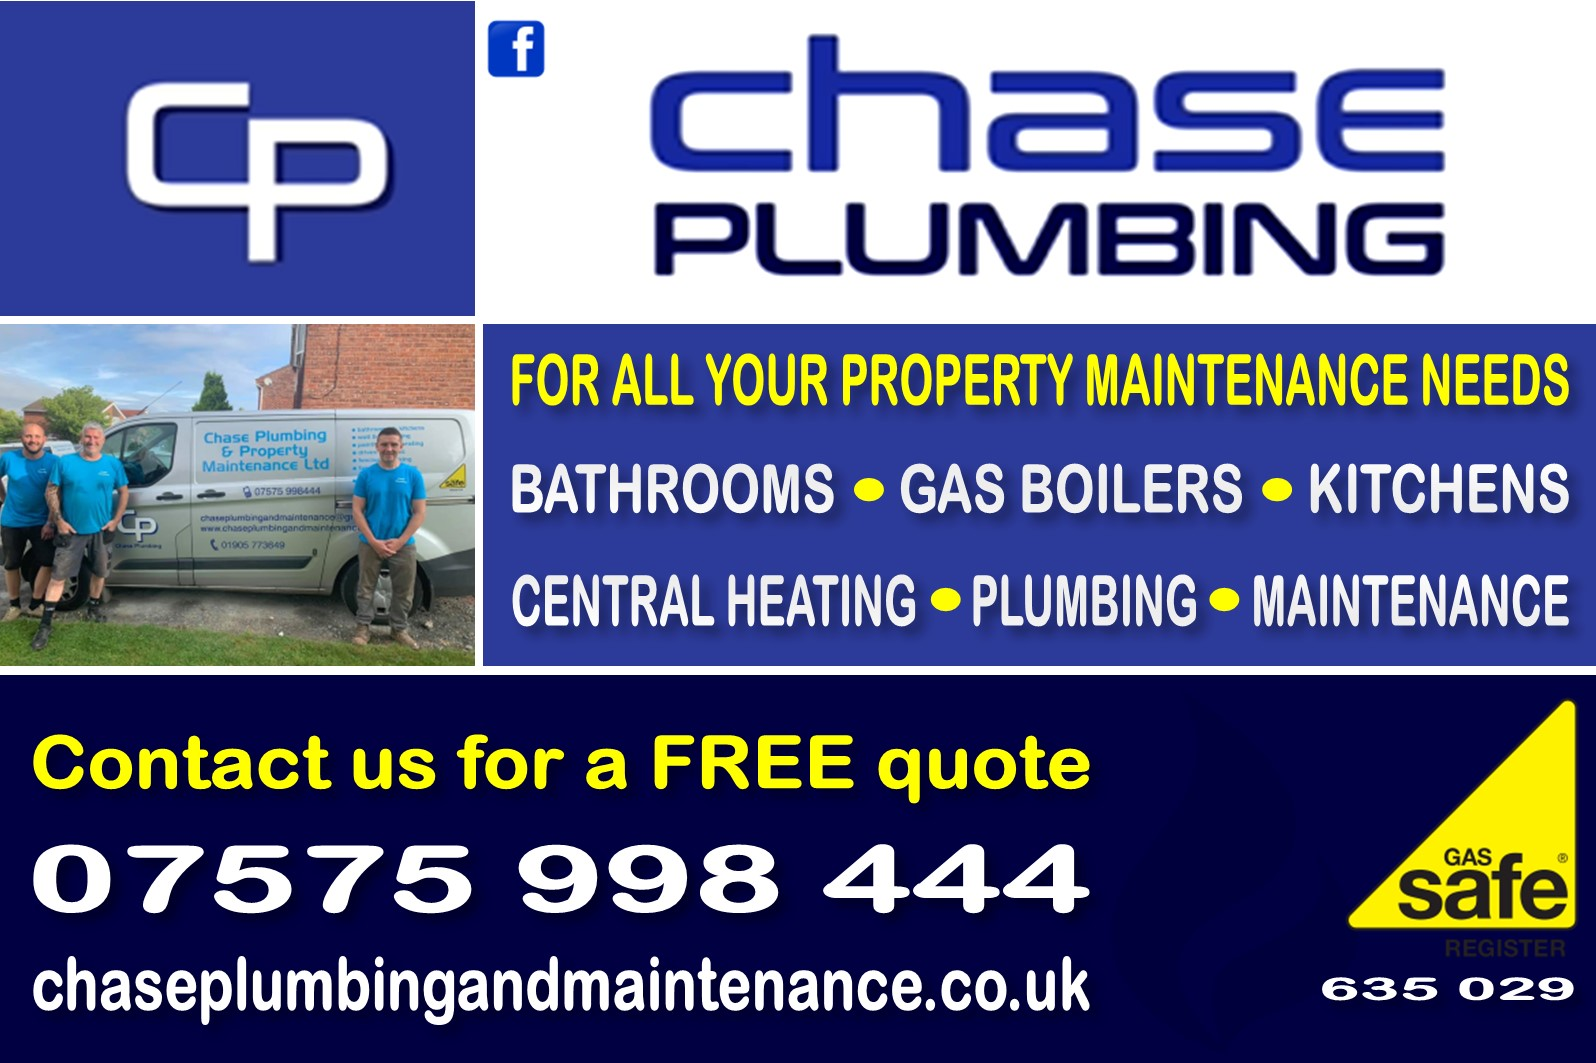 chase plumping and property maintenance